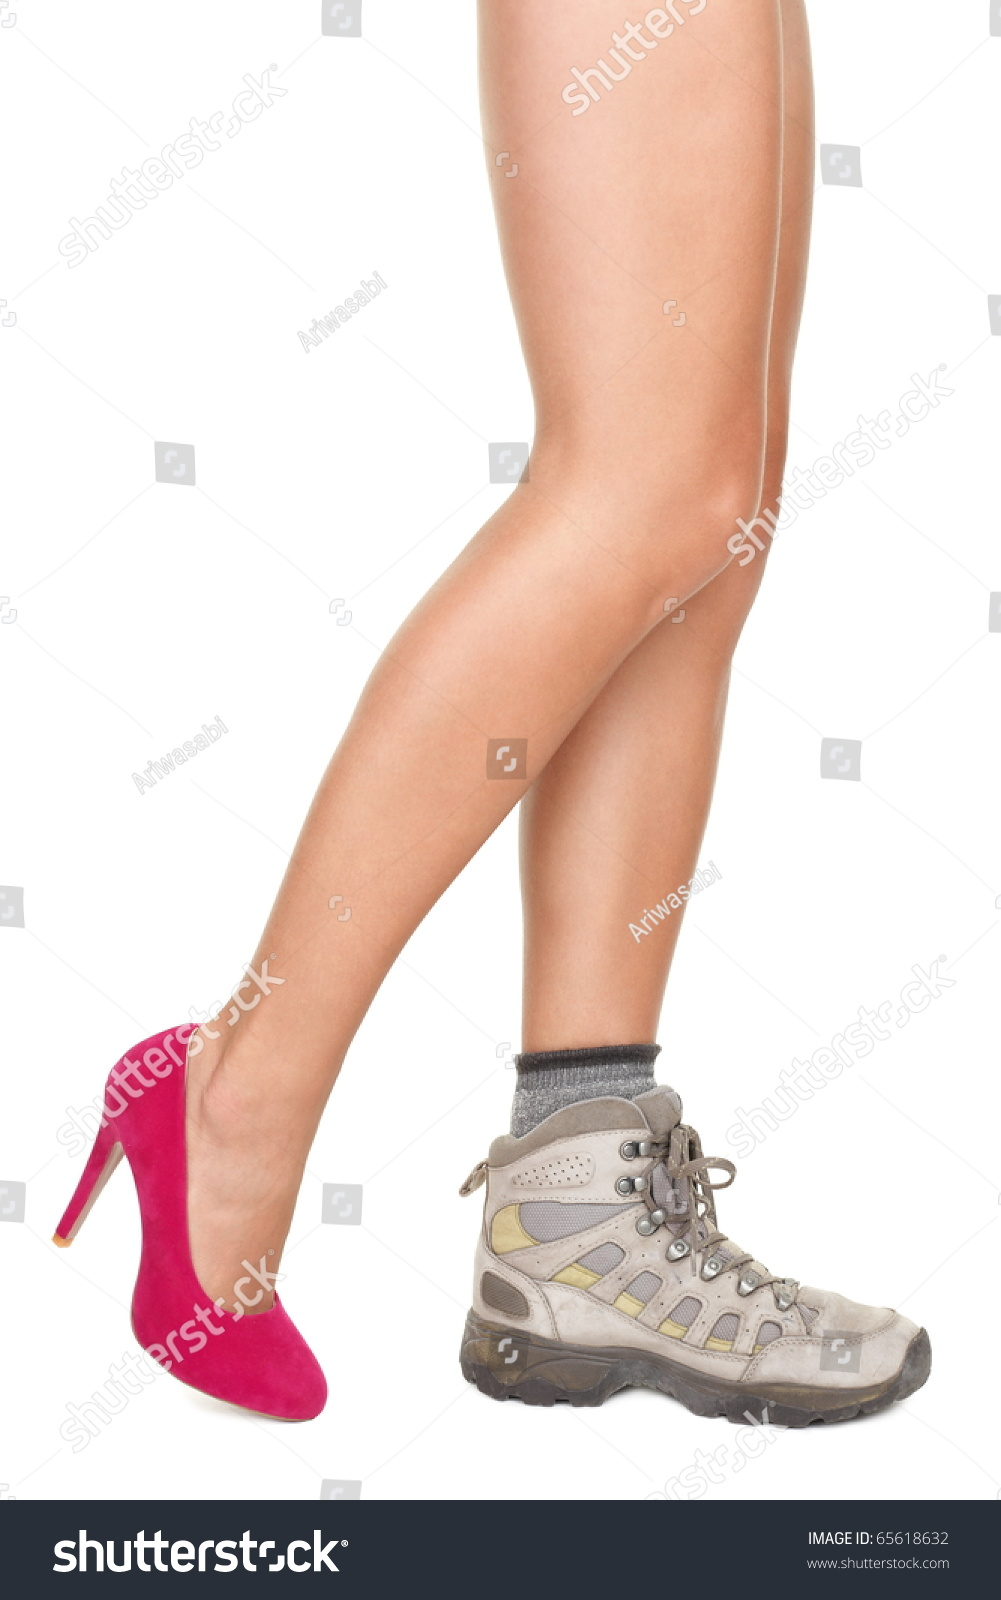 shoe choice concept image sexy woman legs wearing one